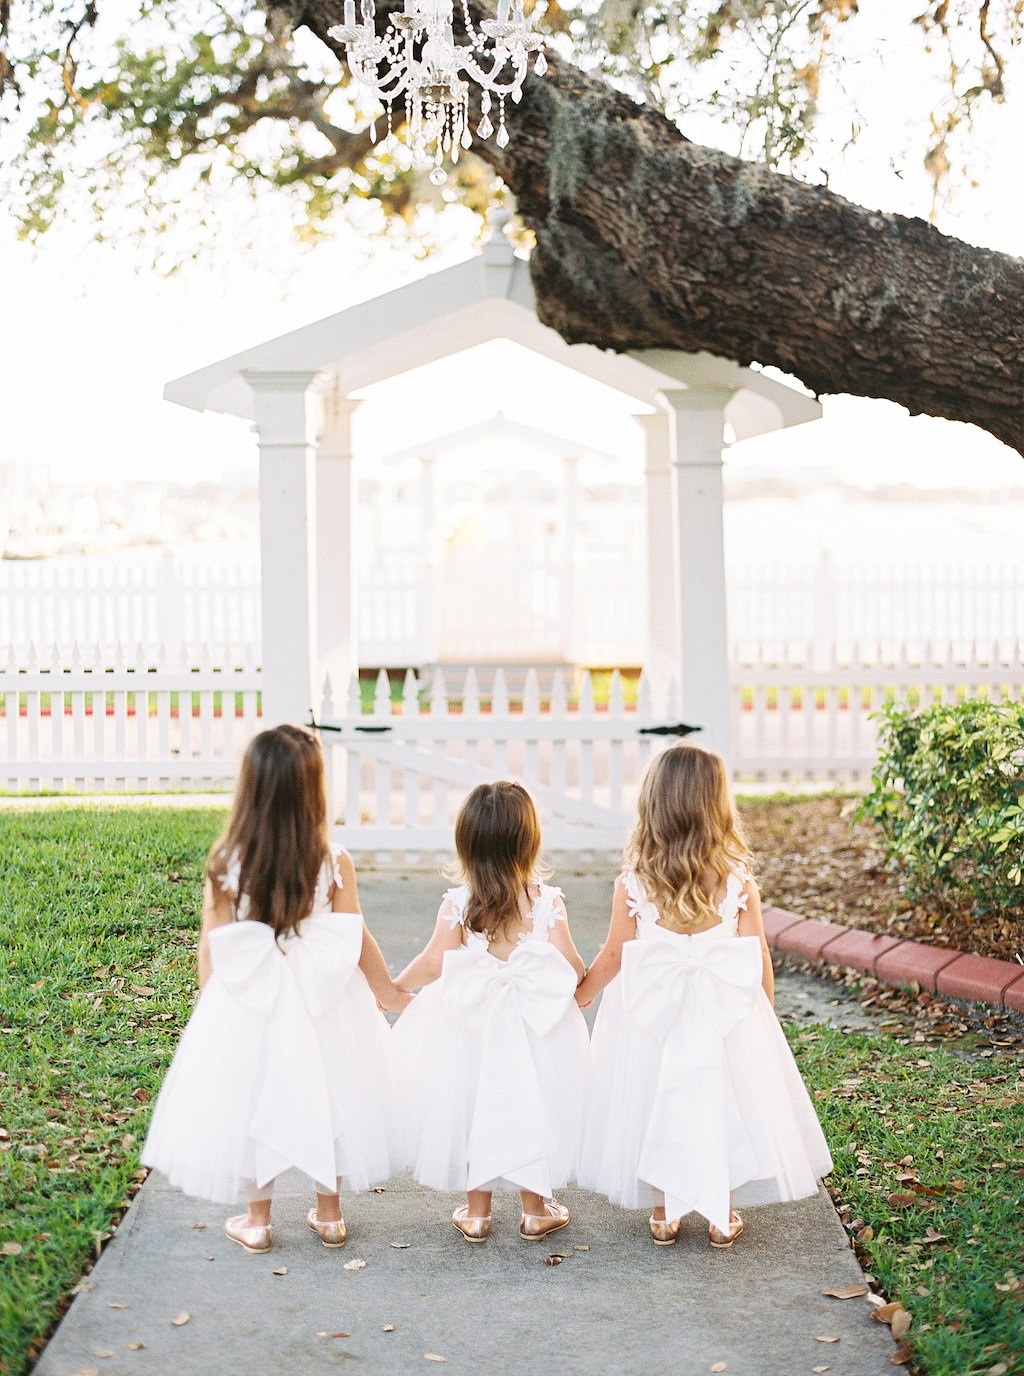 Flowergirls in White Dresses with Big Bows | Florida Wedding Venue Palmetto Riverside Bed and Breakfast